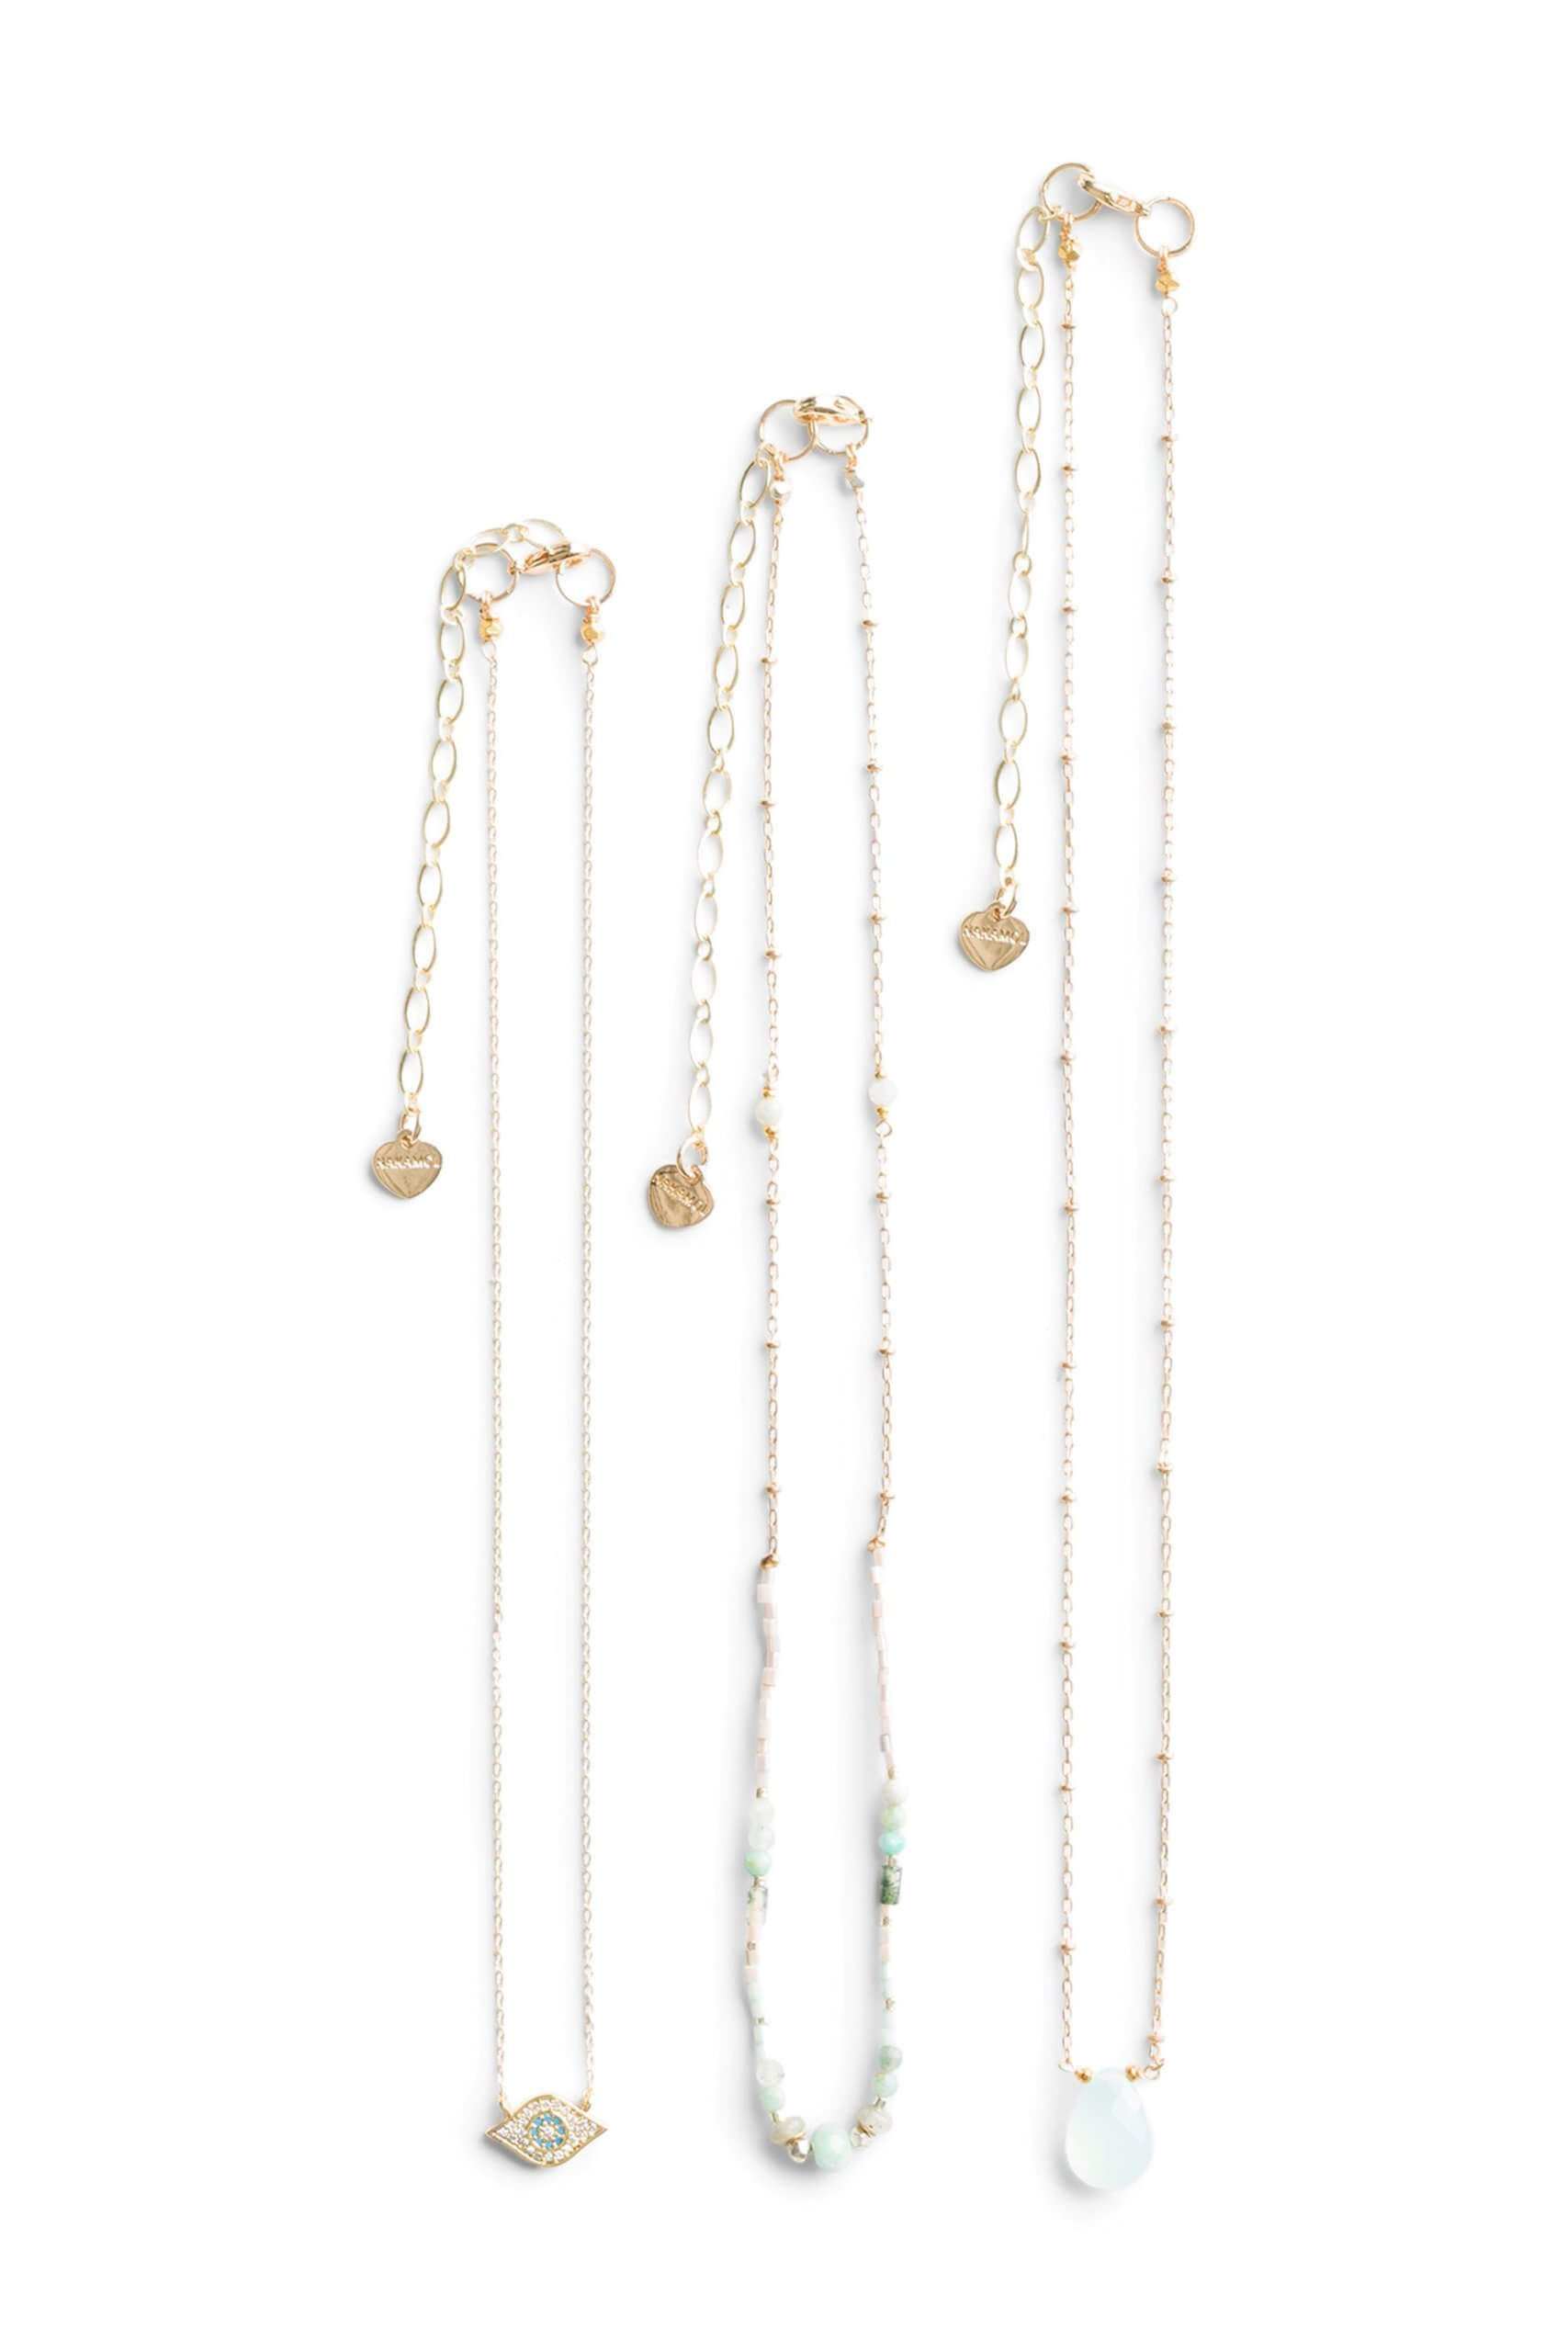 Stitch Fix Women's three-piece necklace set with gold chains and light blue beads.